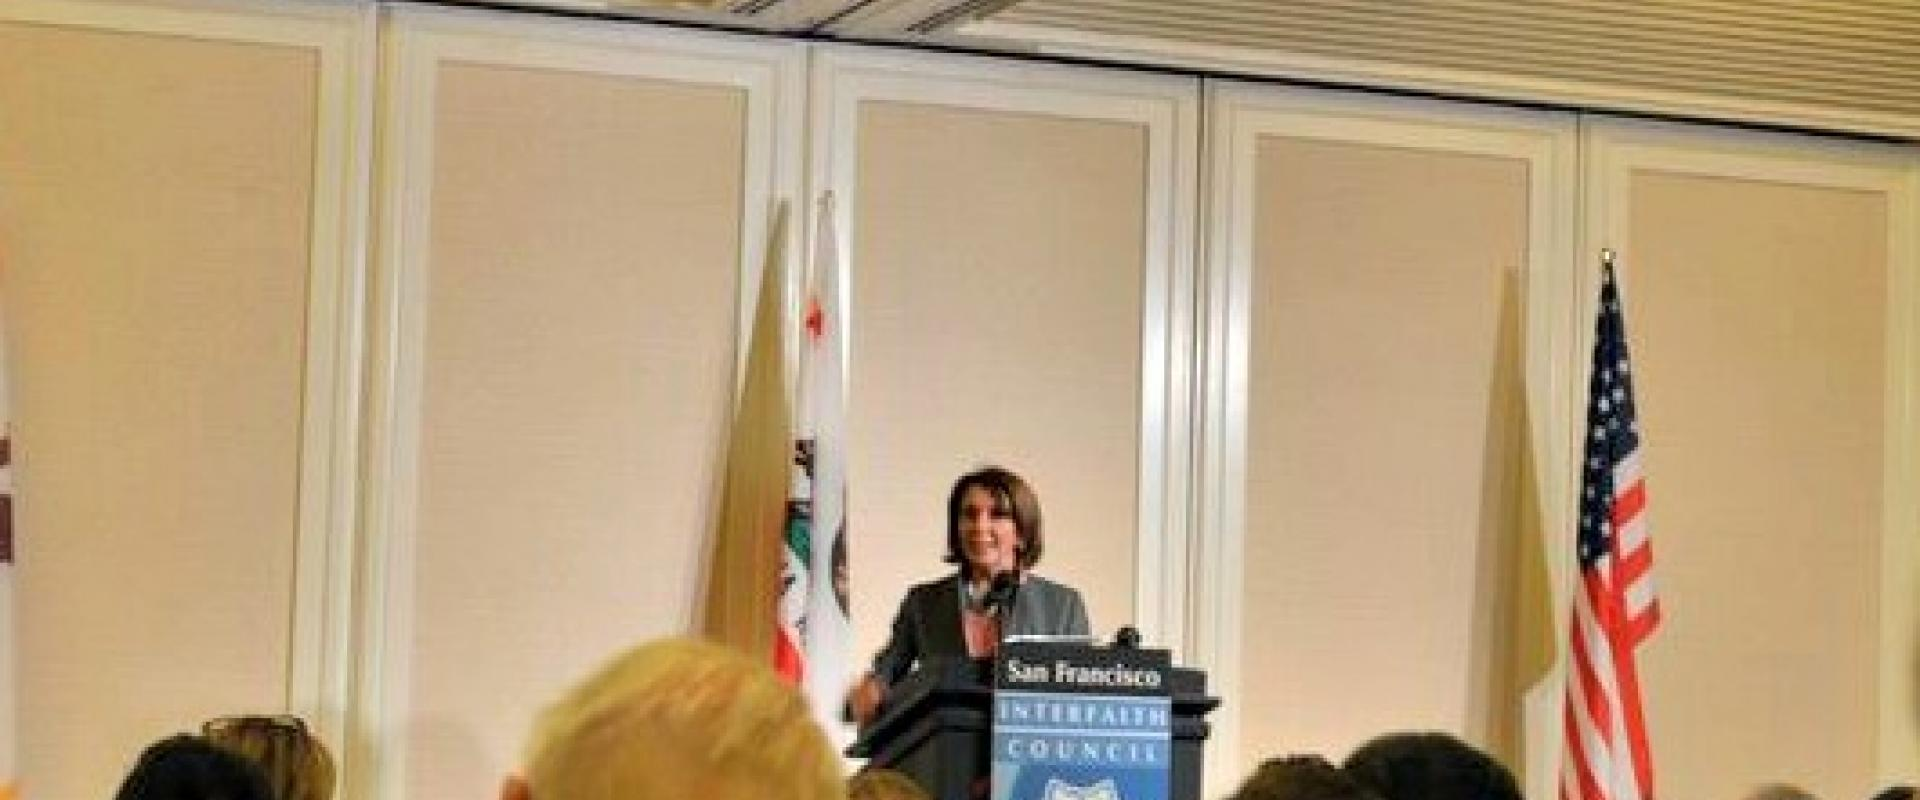 Congresswoman Pelosi joined the San Francisco Interfaith Council Thanksgiving Prayer Breakfast where she discussed the importance of interfaith values and social justice, including giving shelter to people facing the fear of deportation; giving comfort to